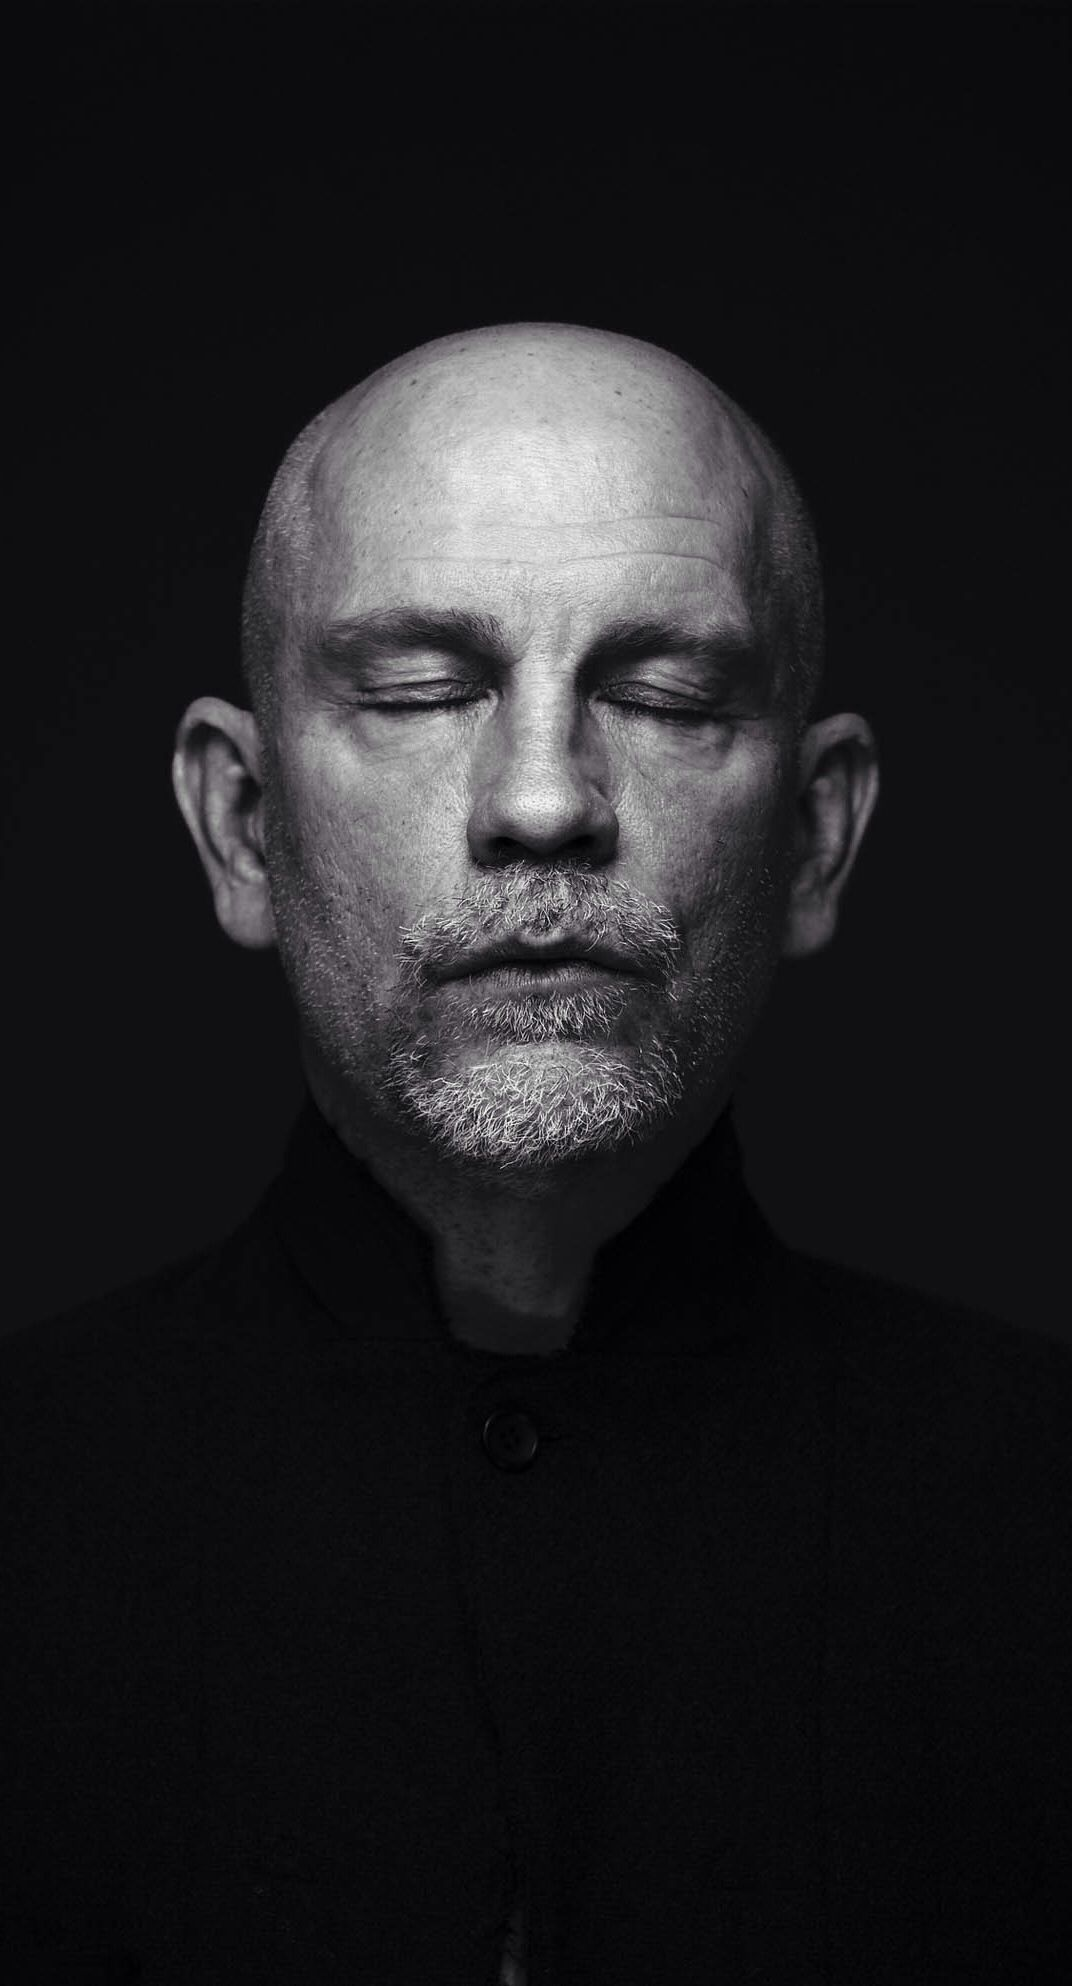 John Gavin Malkovich (born December 9, 1953) is an American actor, director, producer and fashion designer. He was born in Christopher, Illinois. His paternal grandparents were Croatian, from Ozalj.His mother was of French, German, Scottish and English ancestry.